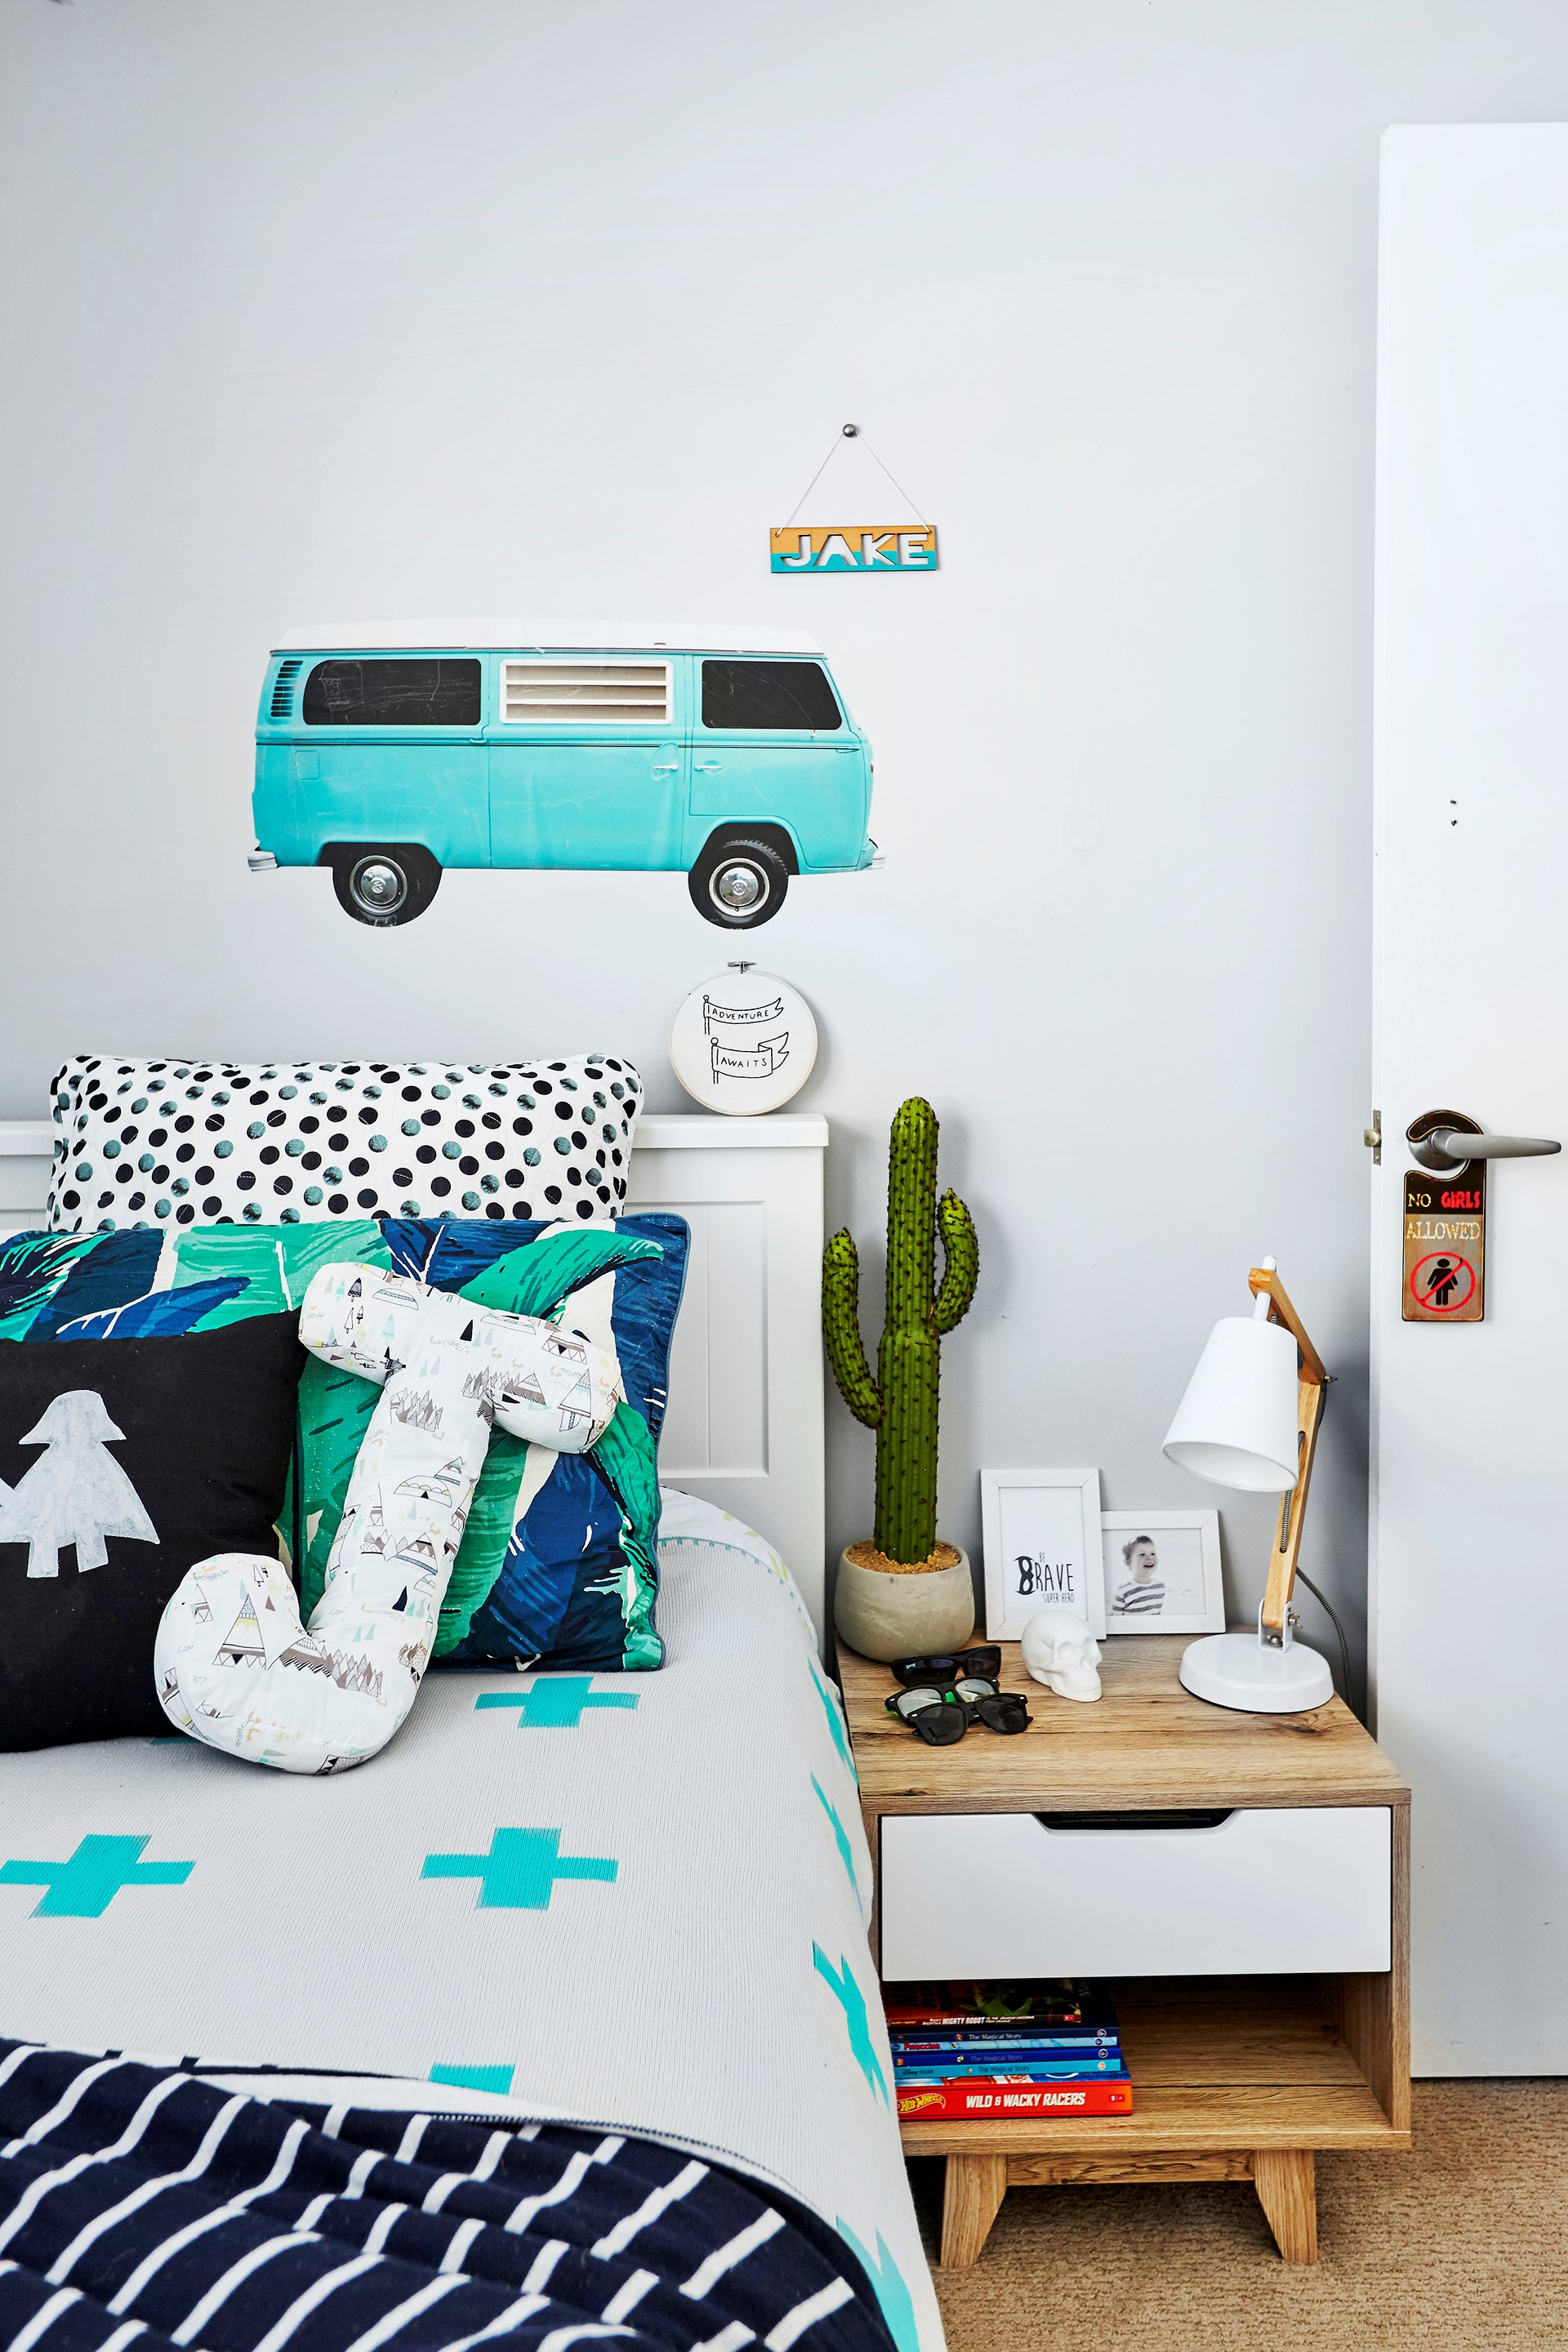 Wall decals, like this campervan Kombi, are a fun update and can be easily removed as your child grows older. Photo: Andrew Finlayson